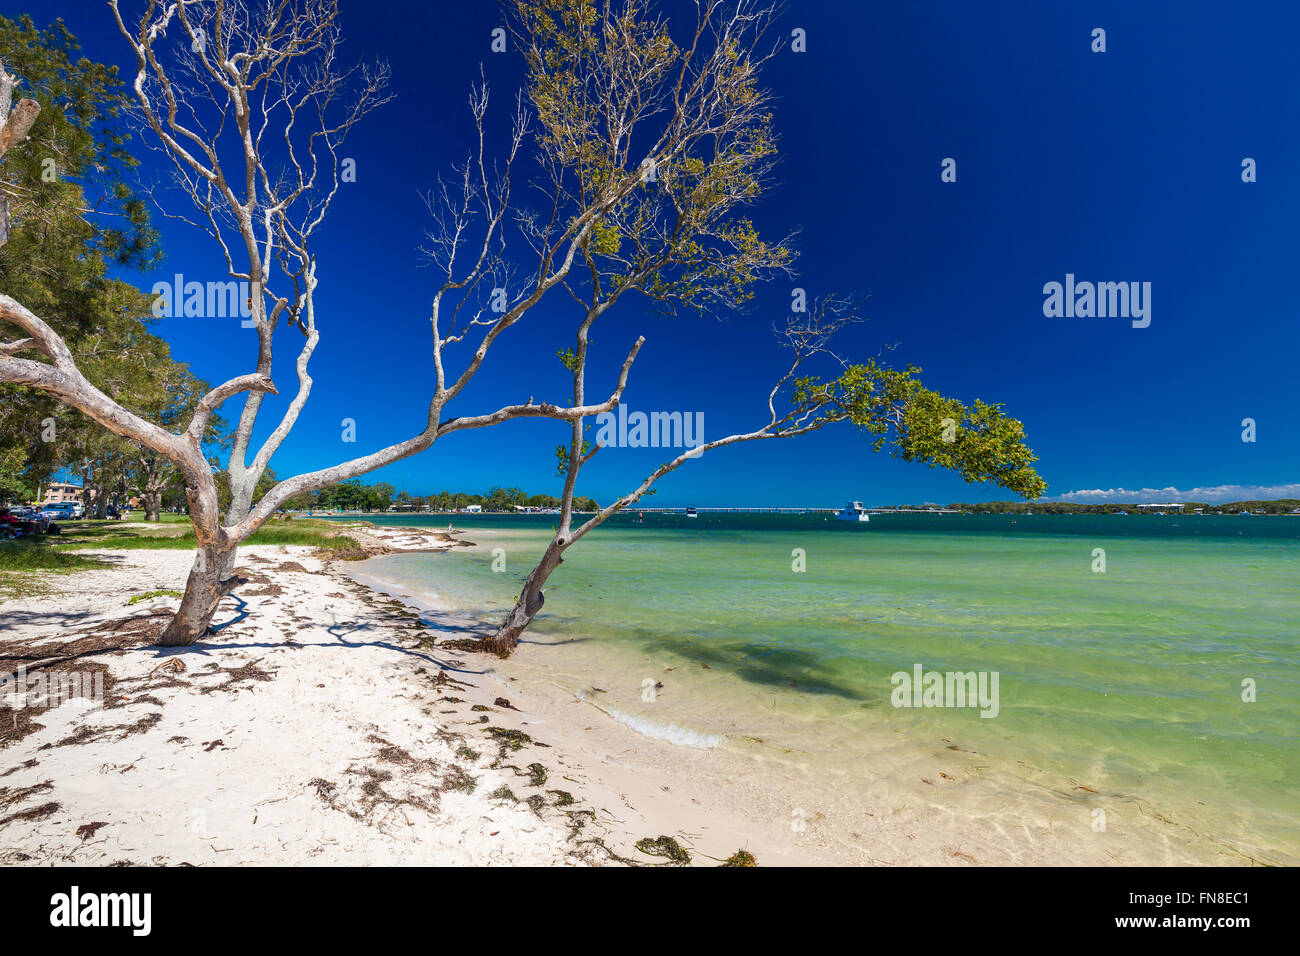 BRIBIE ISLAND, AUS - FEB 14 2016: Beach with trees on the west side of Bribie Island, Queensland, Australia - Stock Image